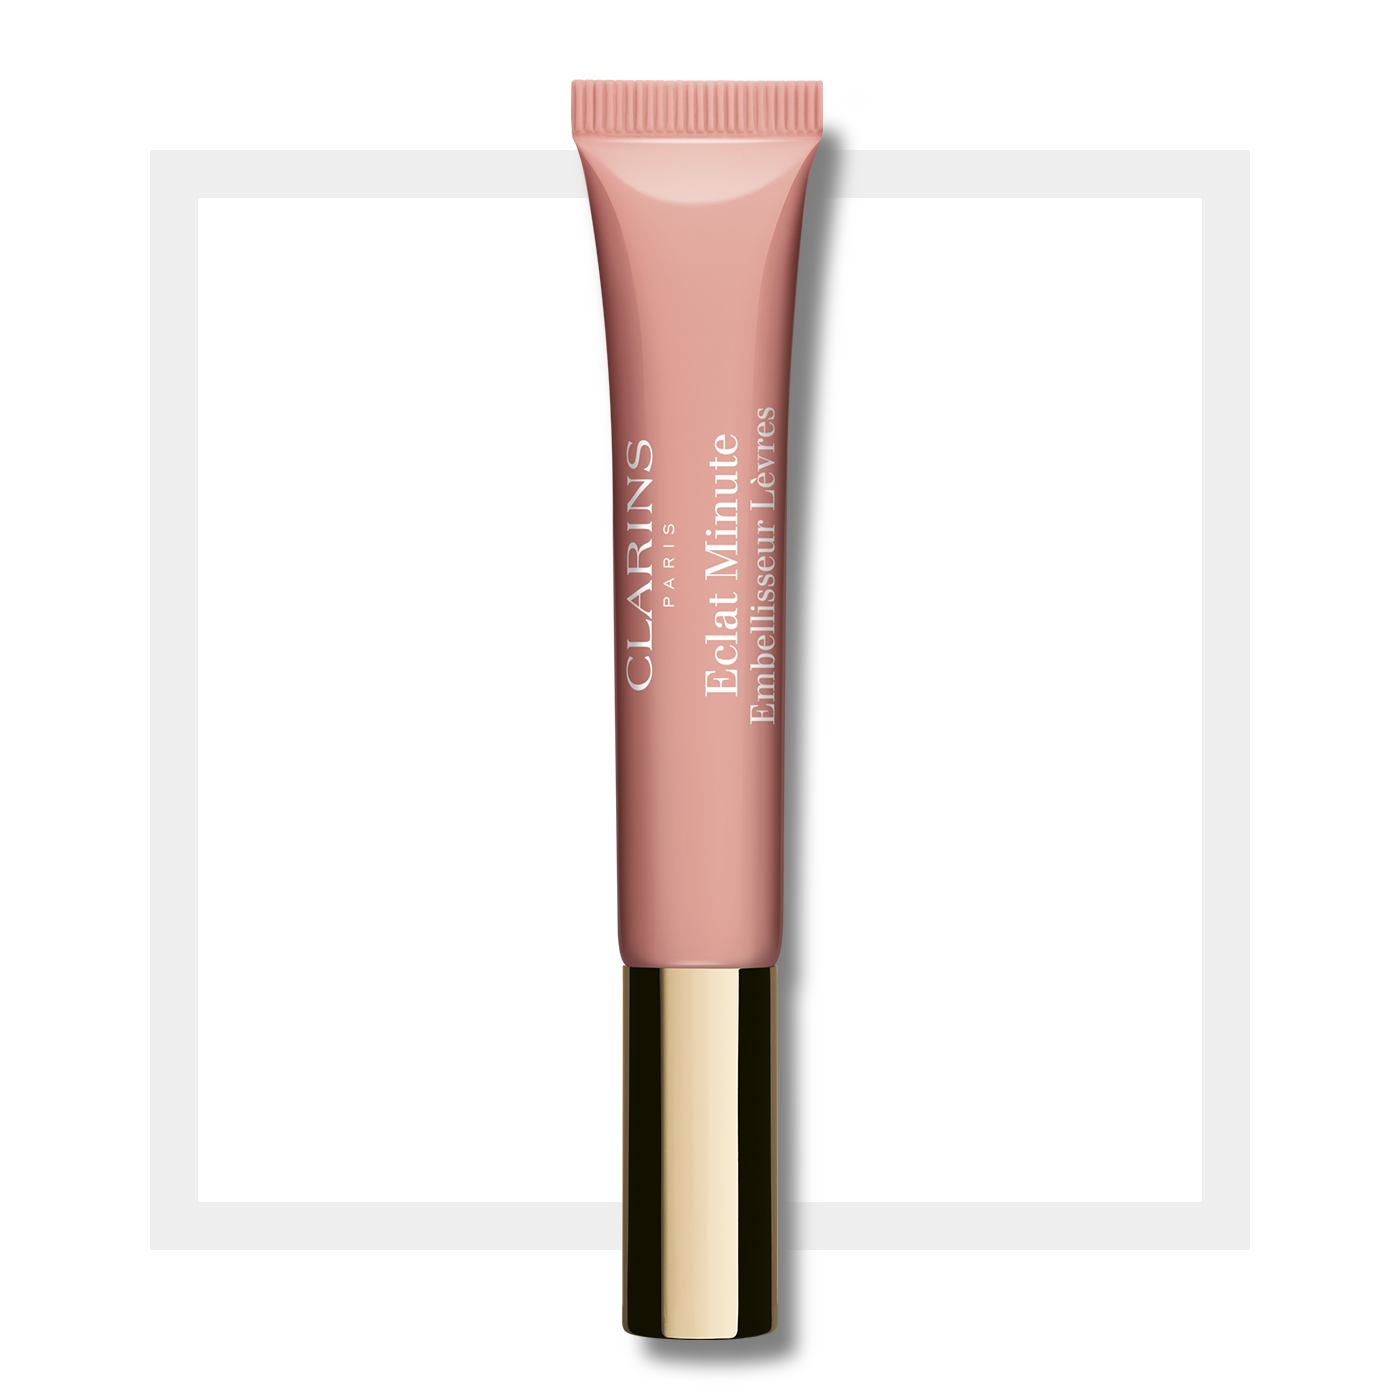 Instant Light Natural Lip Perfector For Younger Fuller